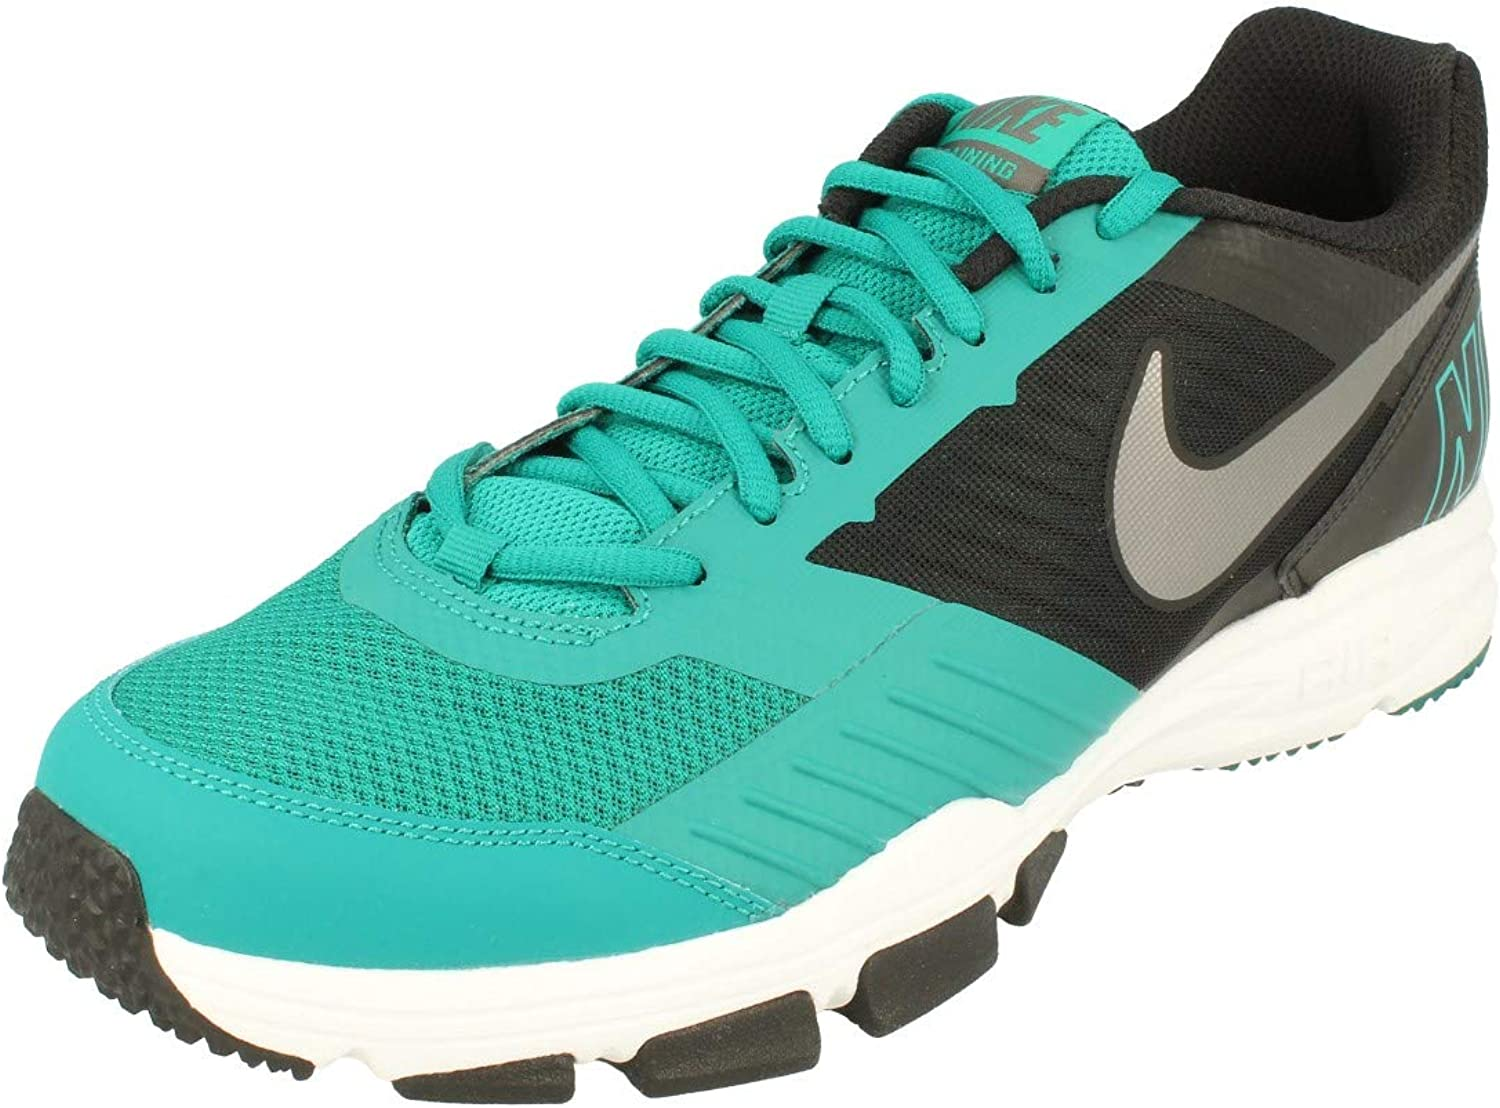 Nike Air One Tr 2, Men's Hiking shoes